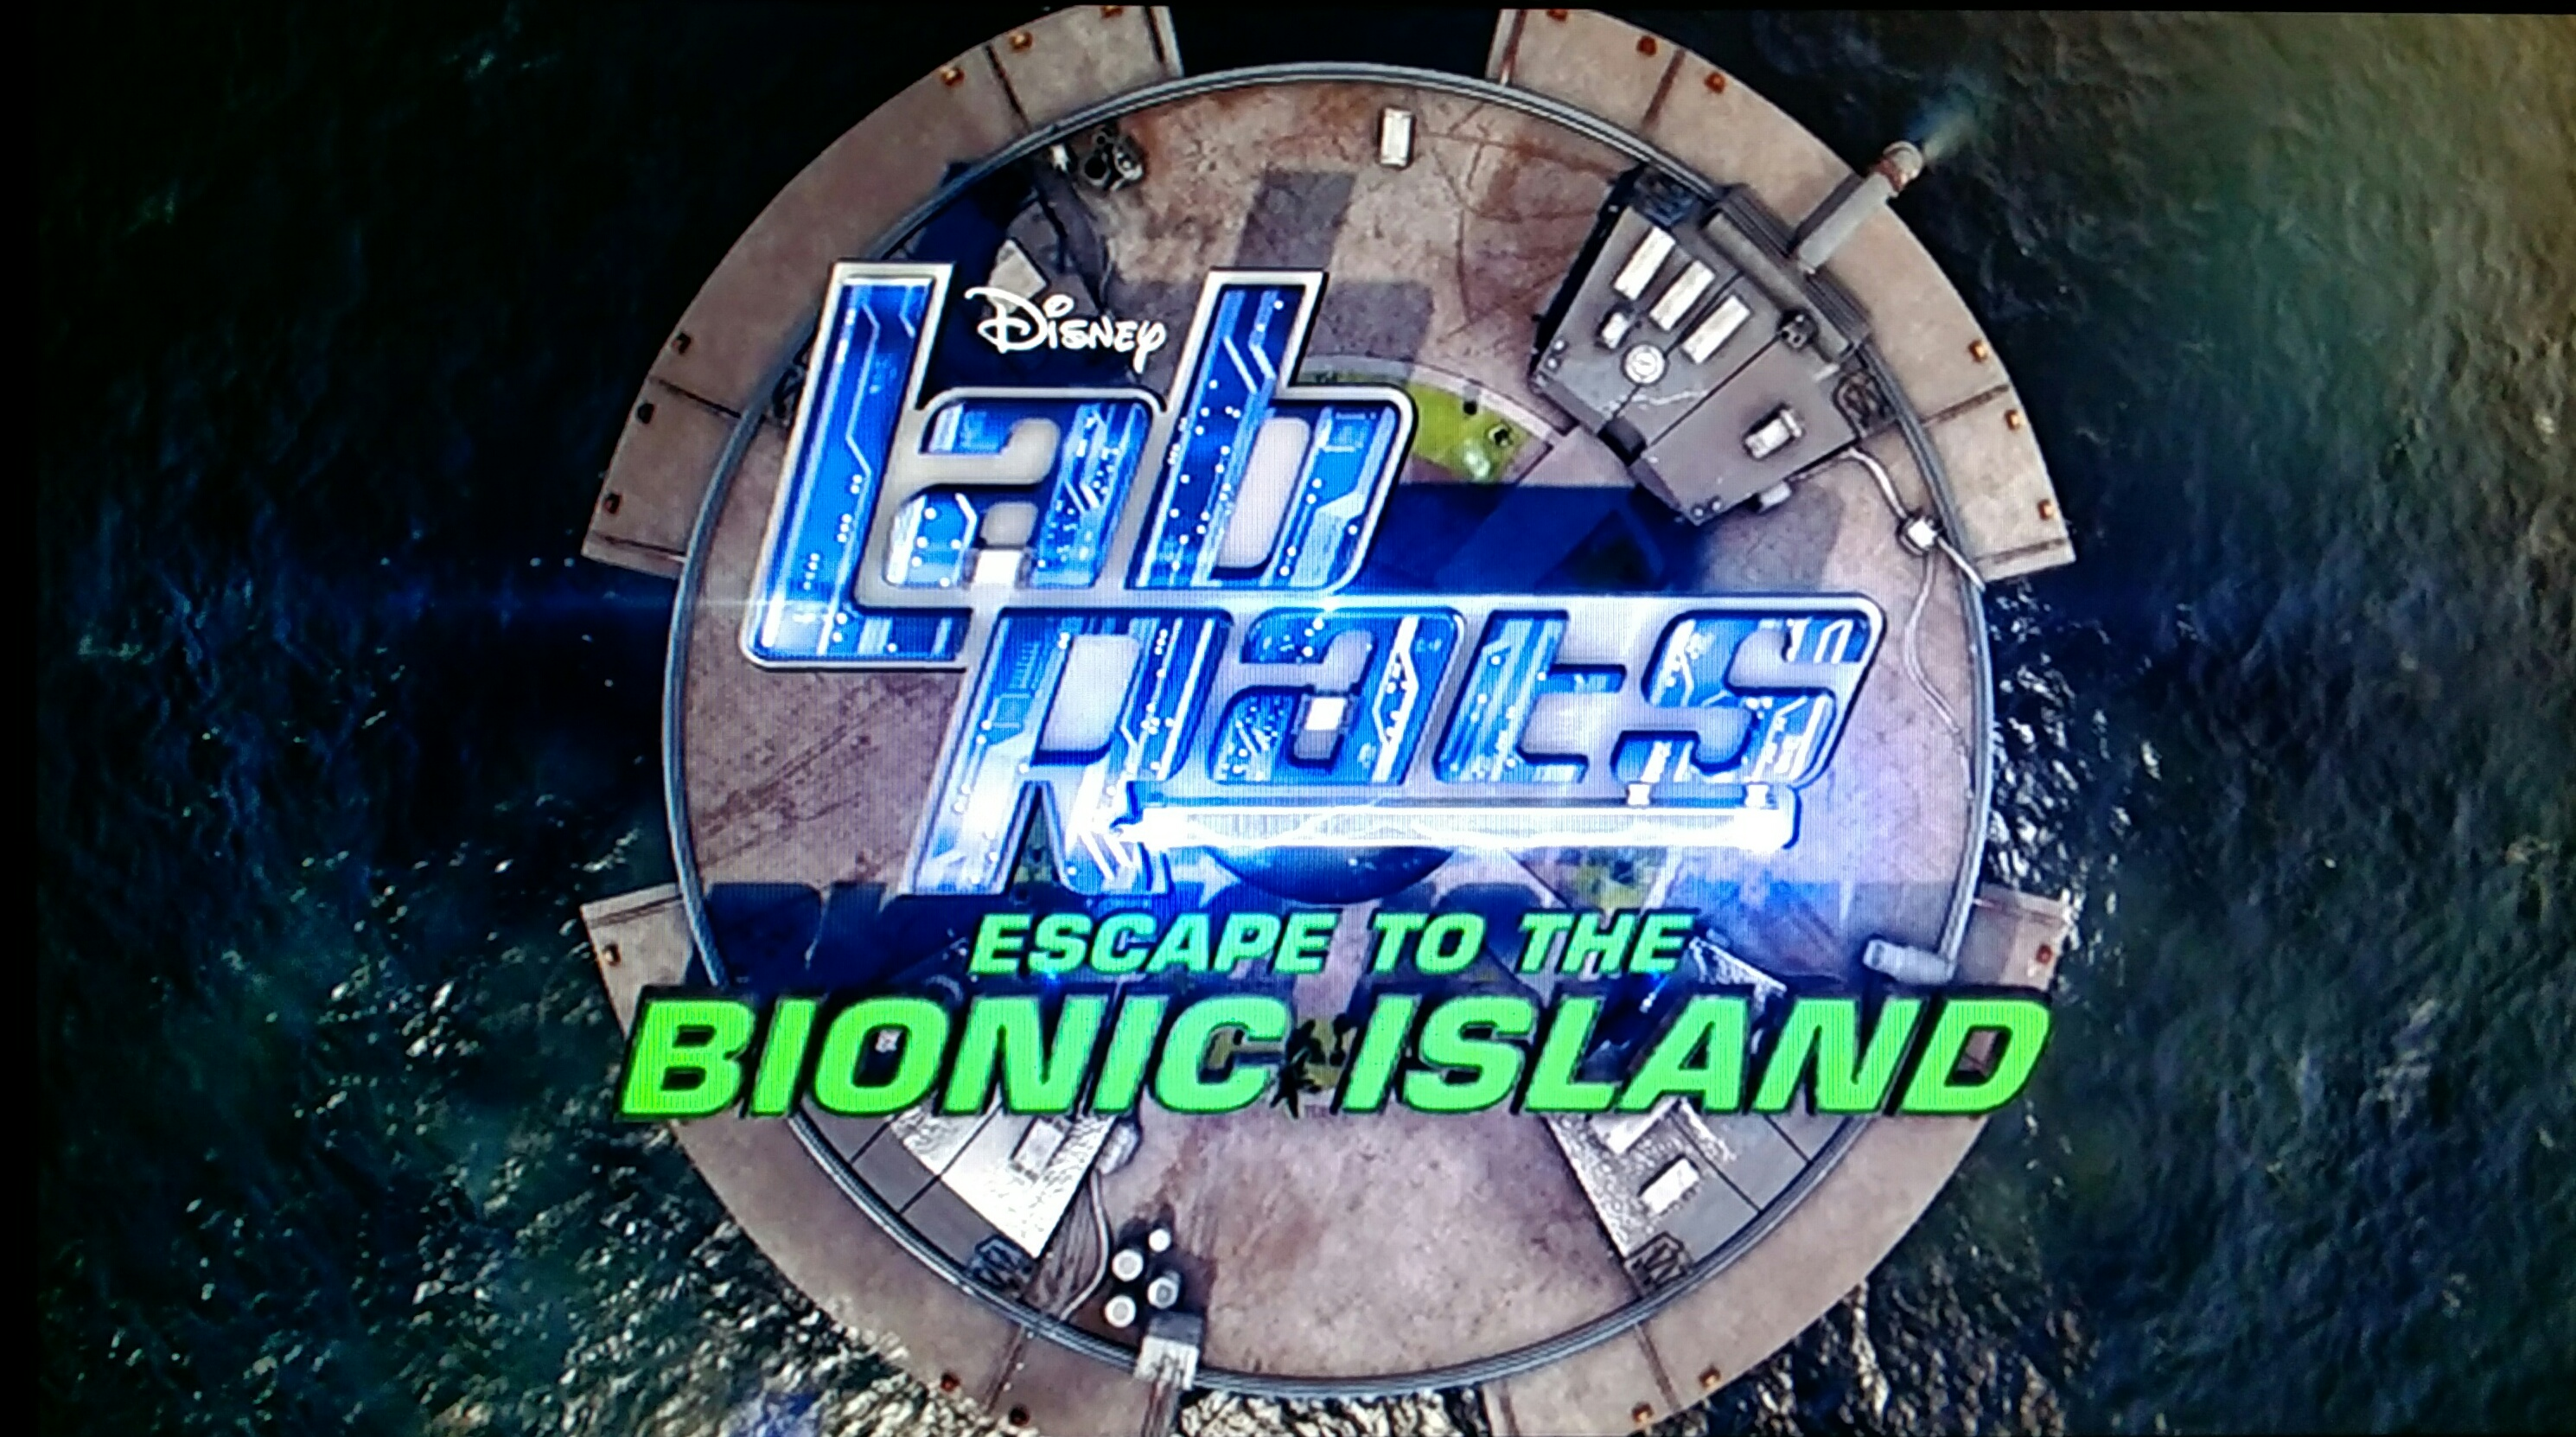 Escape To The Bionic Island